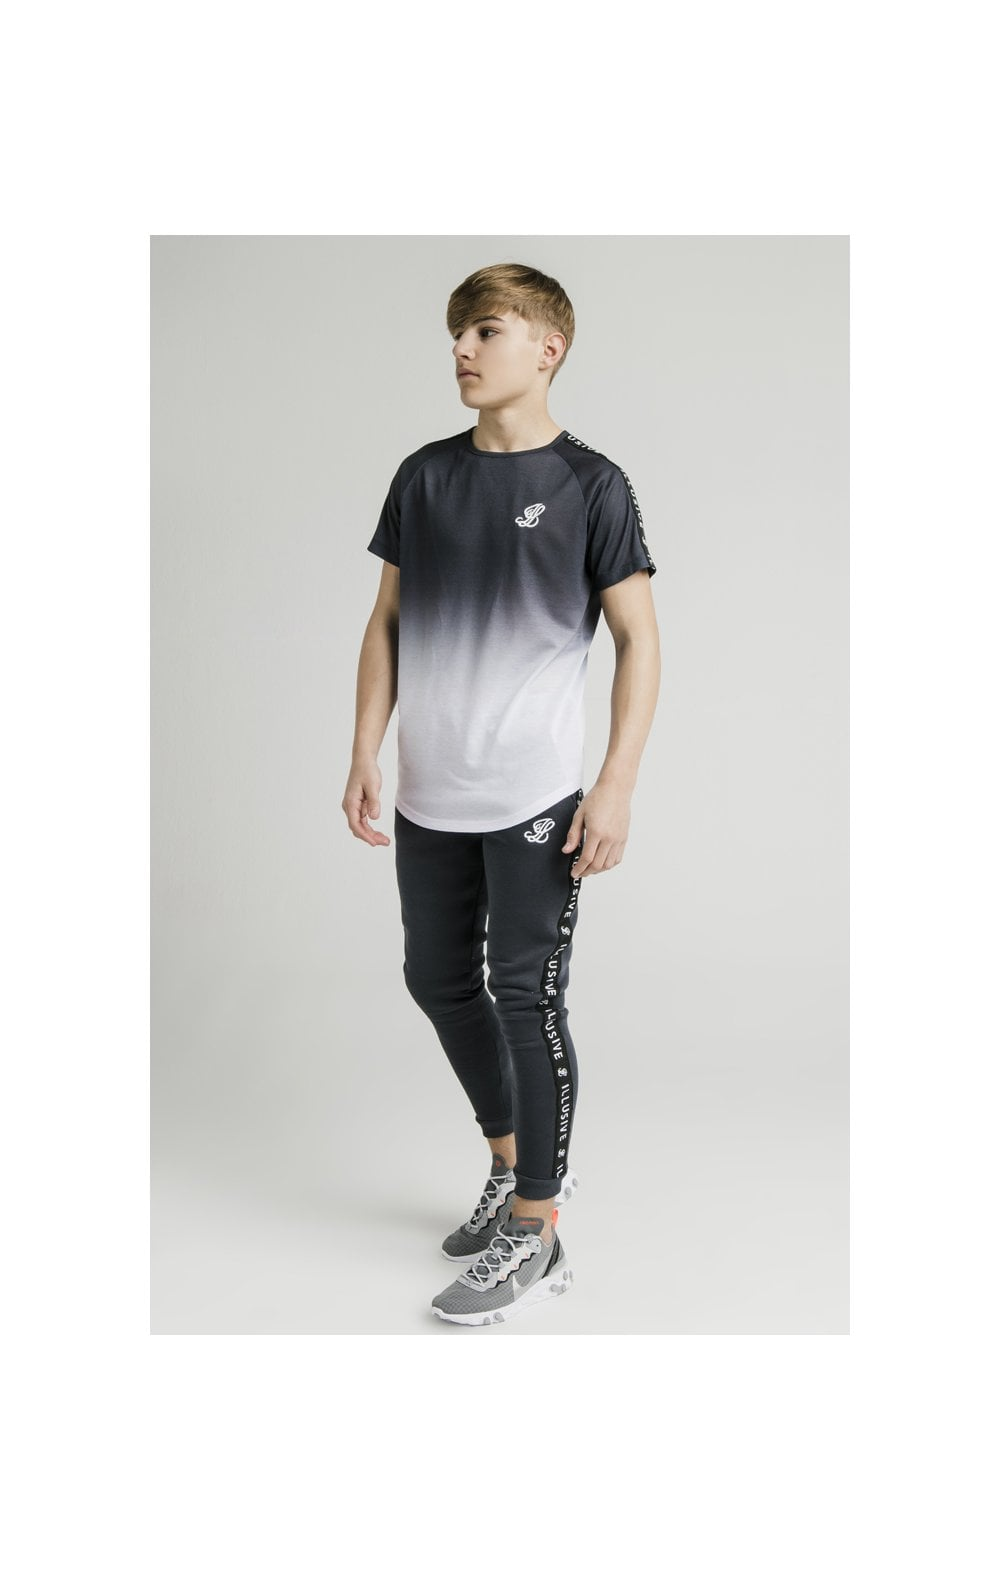 Load image into Gallery viewer, Illusive London S/S Fade Taped Tee - Grey & White (3)